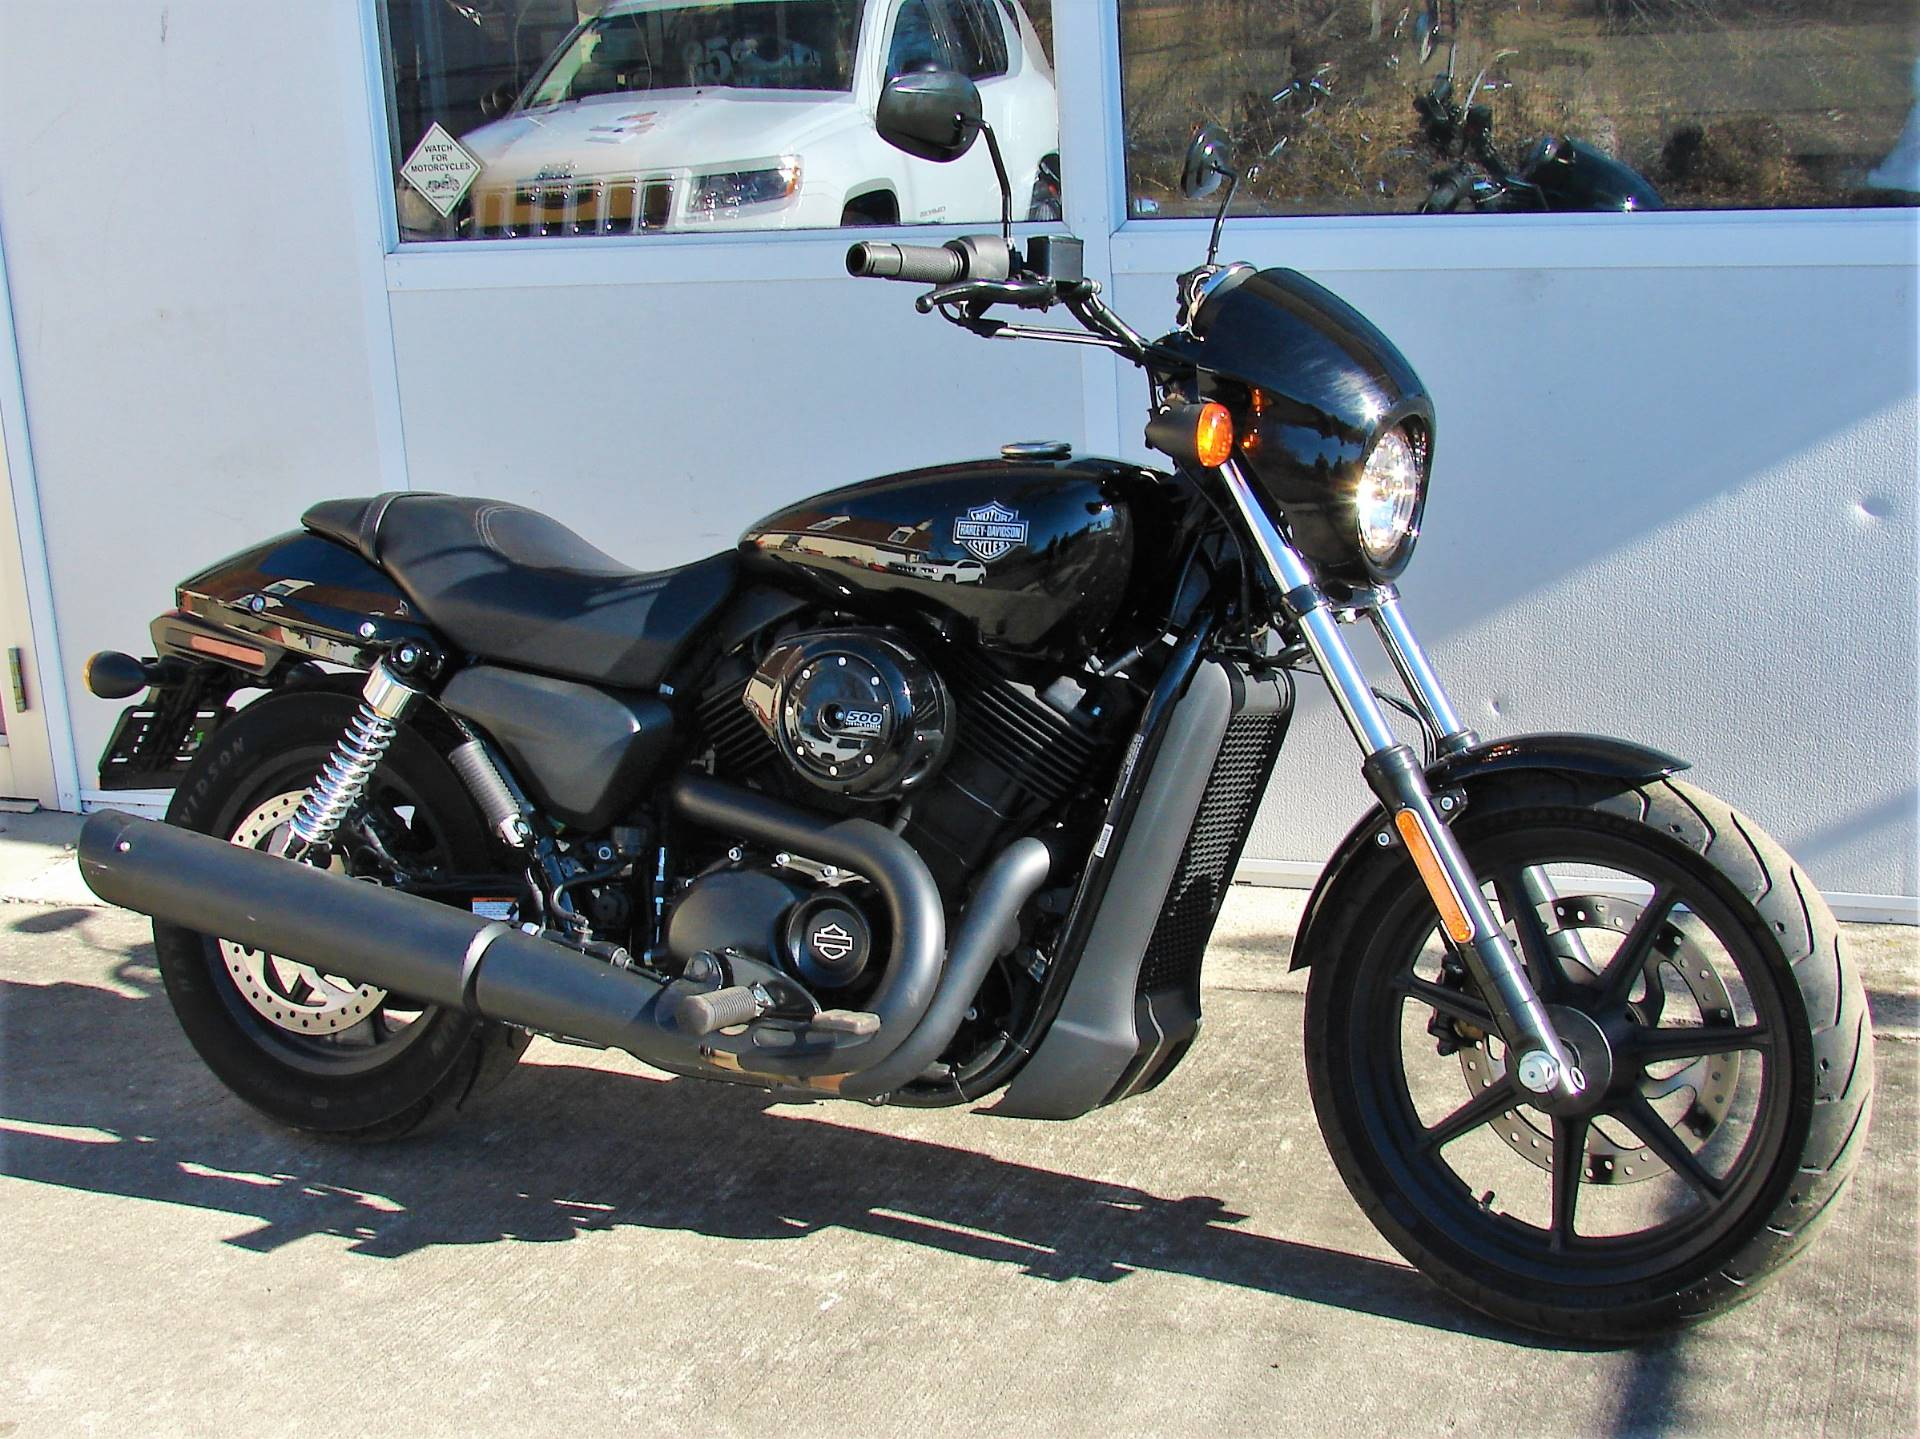 2017 Harley-Davidson XG500 Street Motorcycle in Williamstown, New Jersey - Photo 3